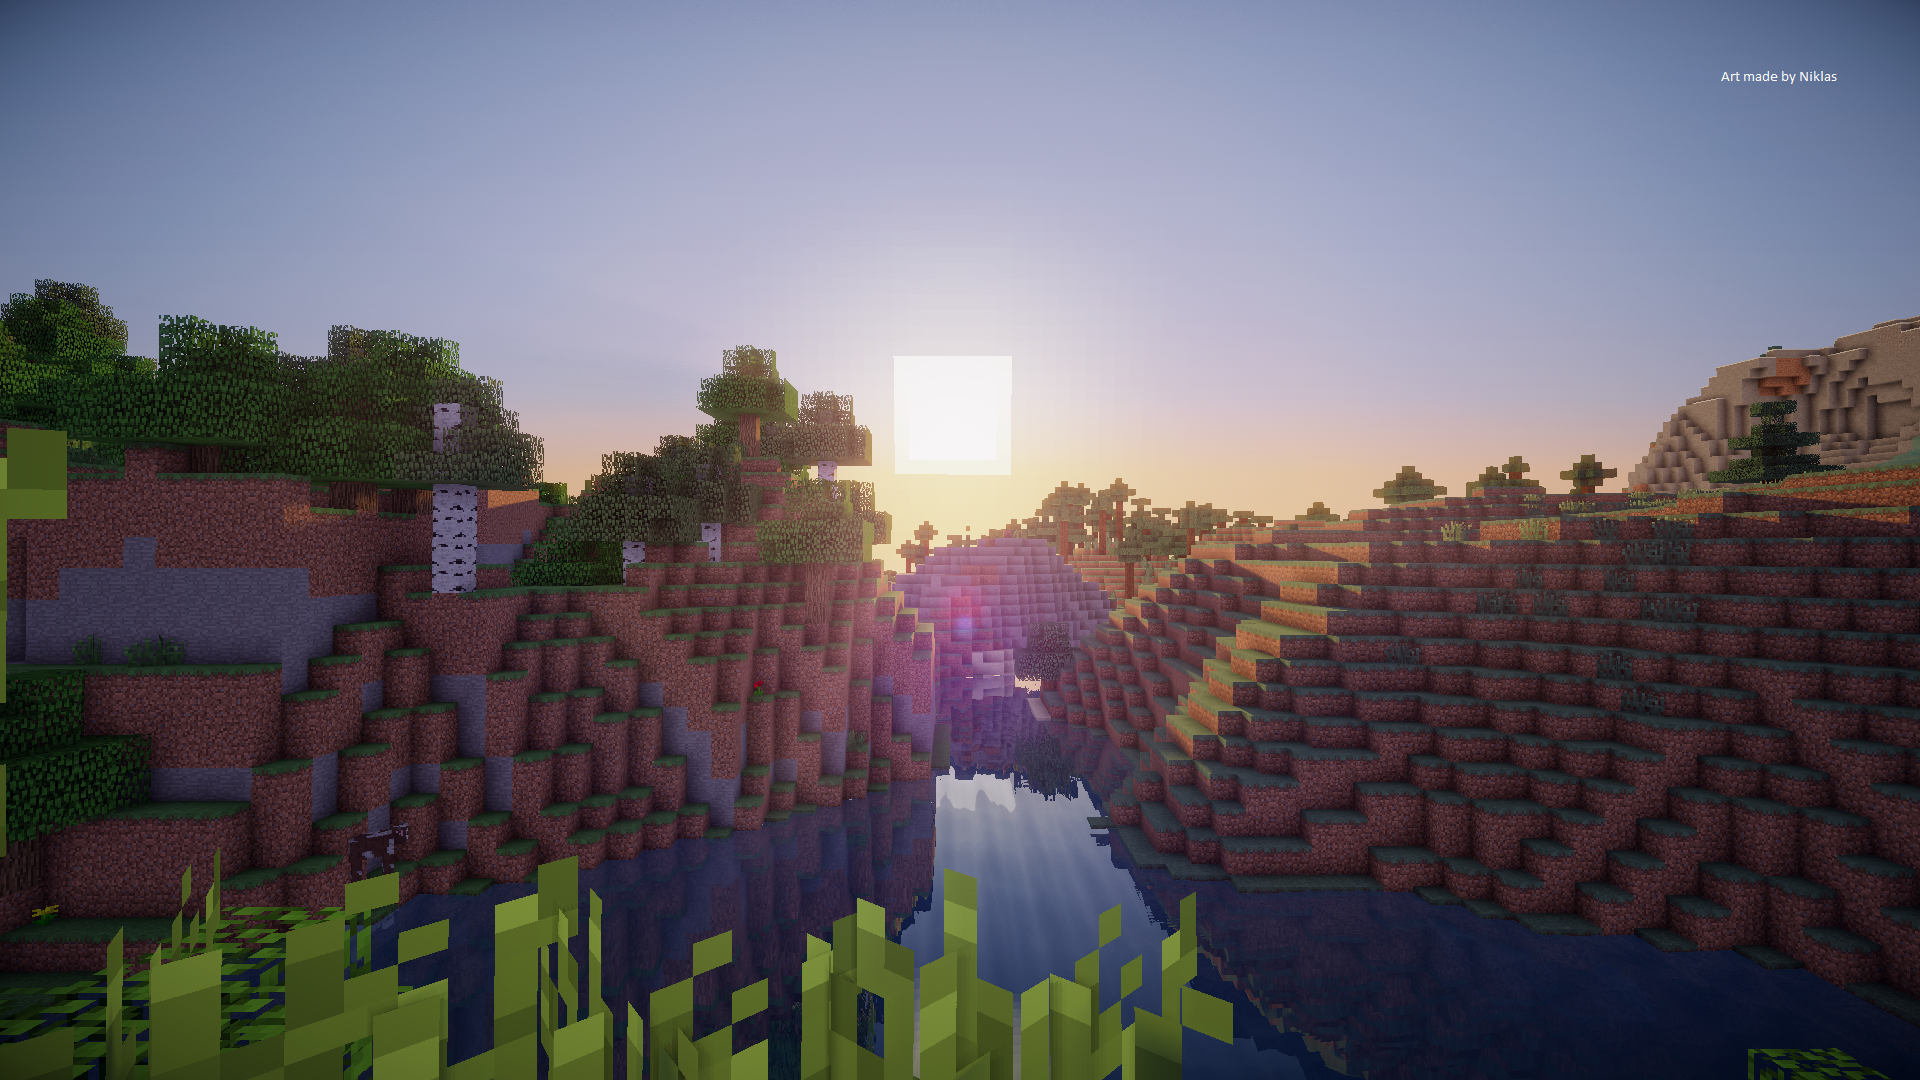 minecraft background images hd - photo #13